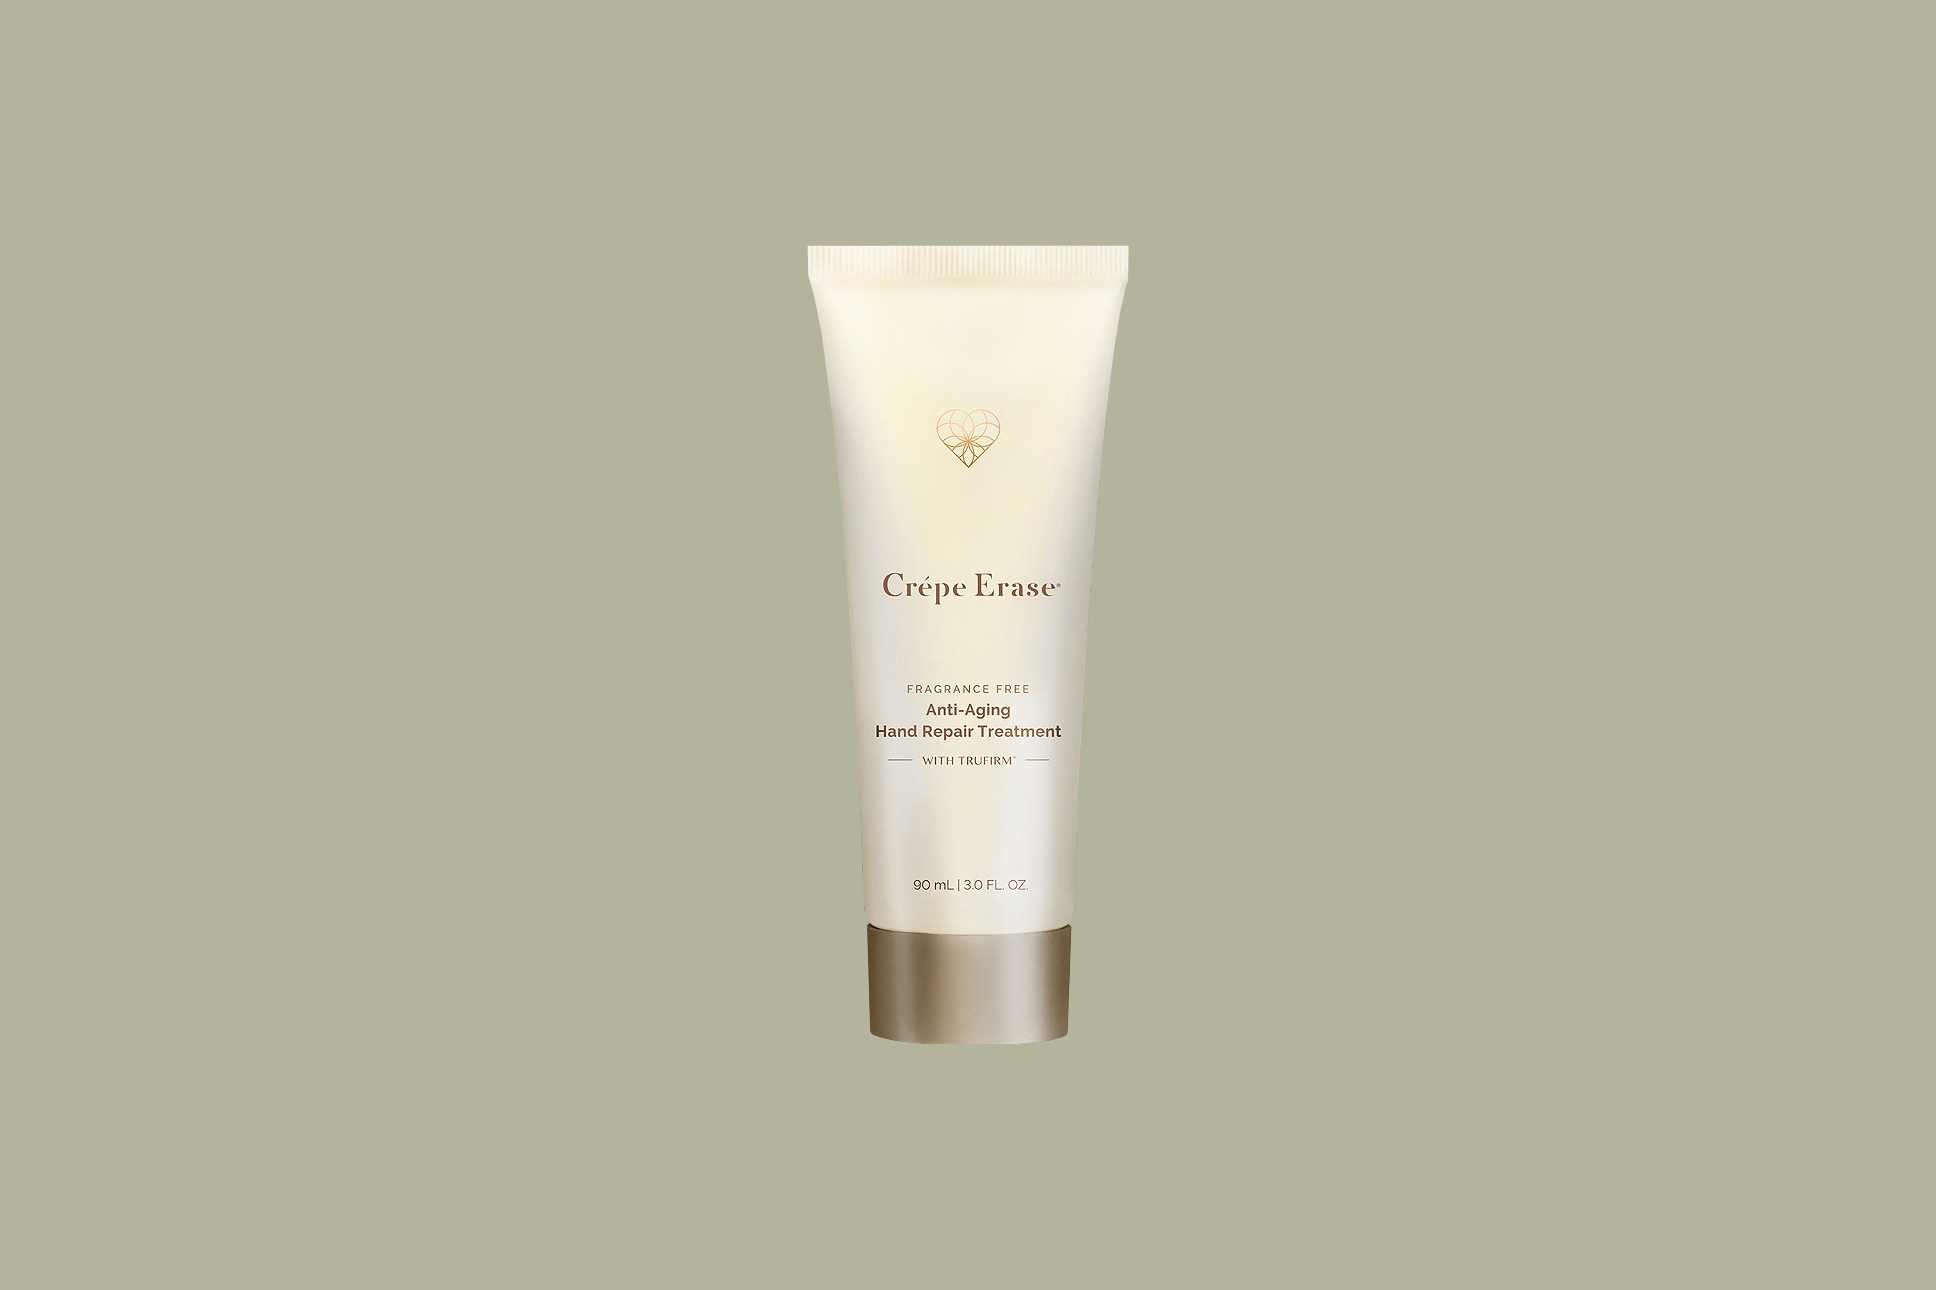 Crepe Erase Anti-Aging Hand Repair Treatment